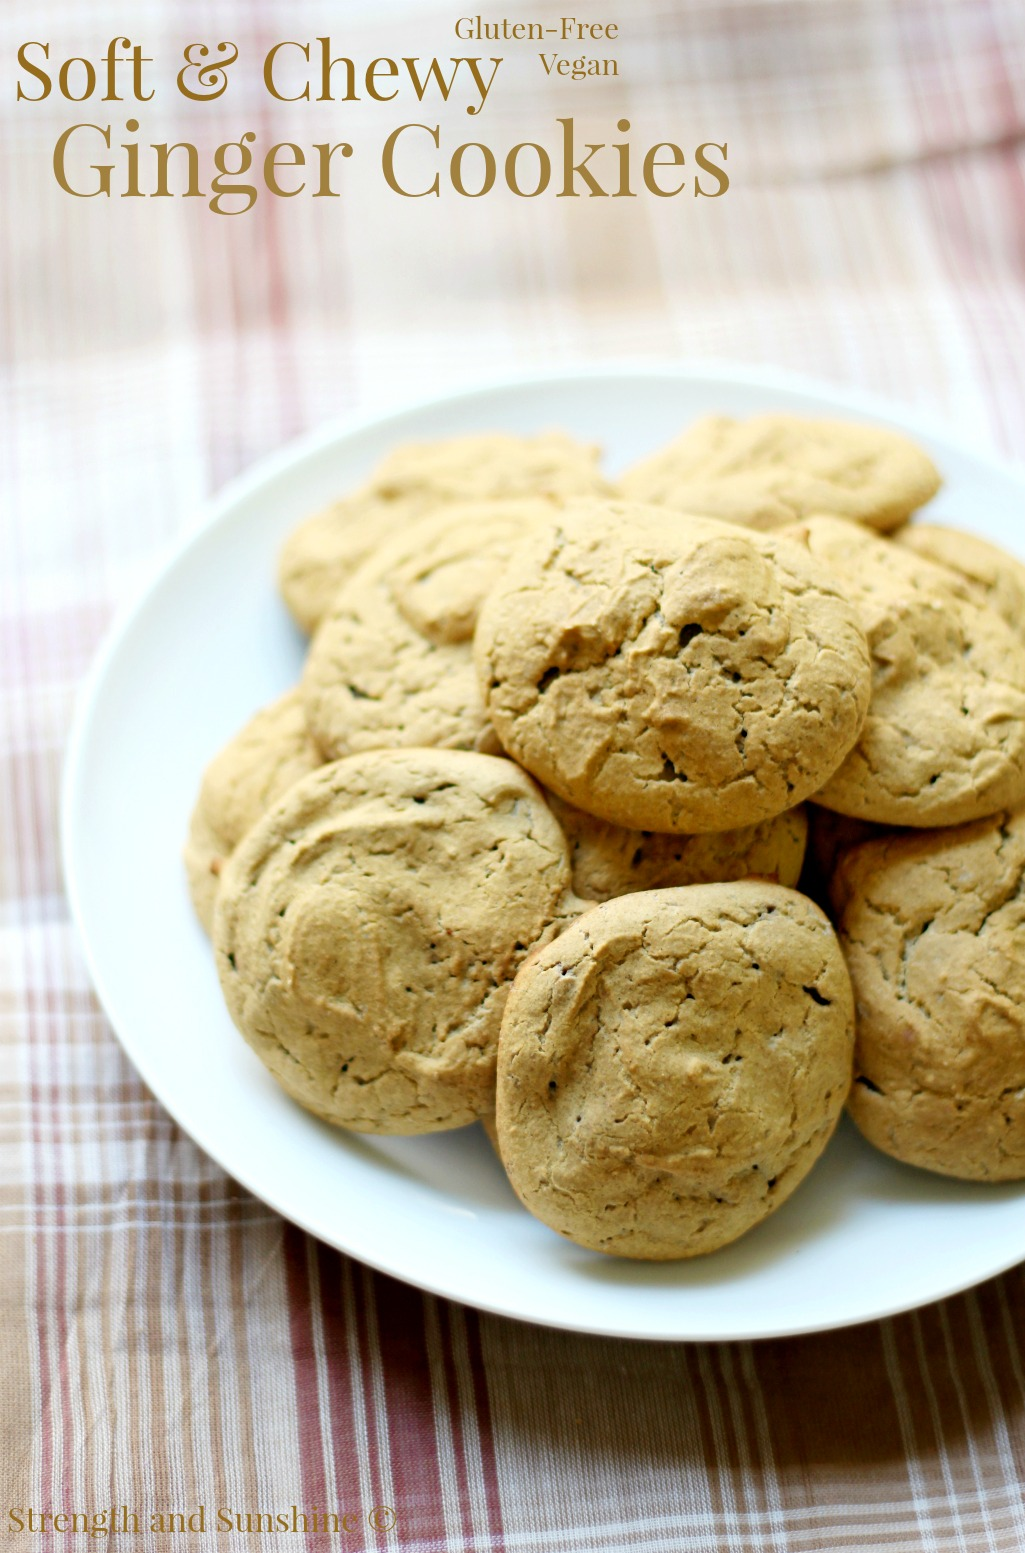 Soft & Chewy Ginger Cookies from Strength & Sunshine: